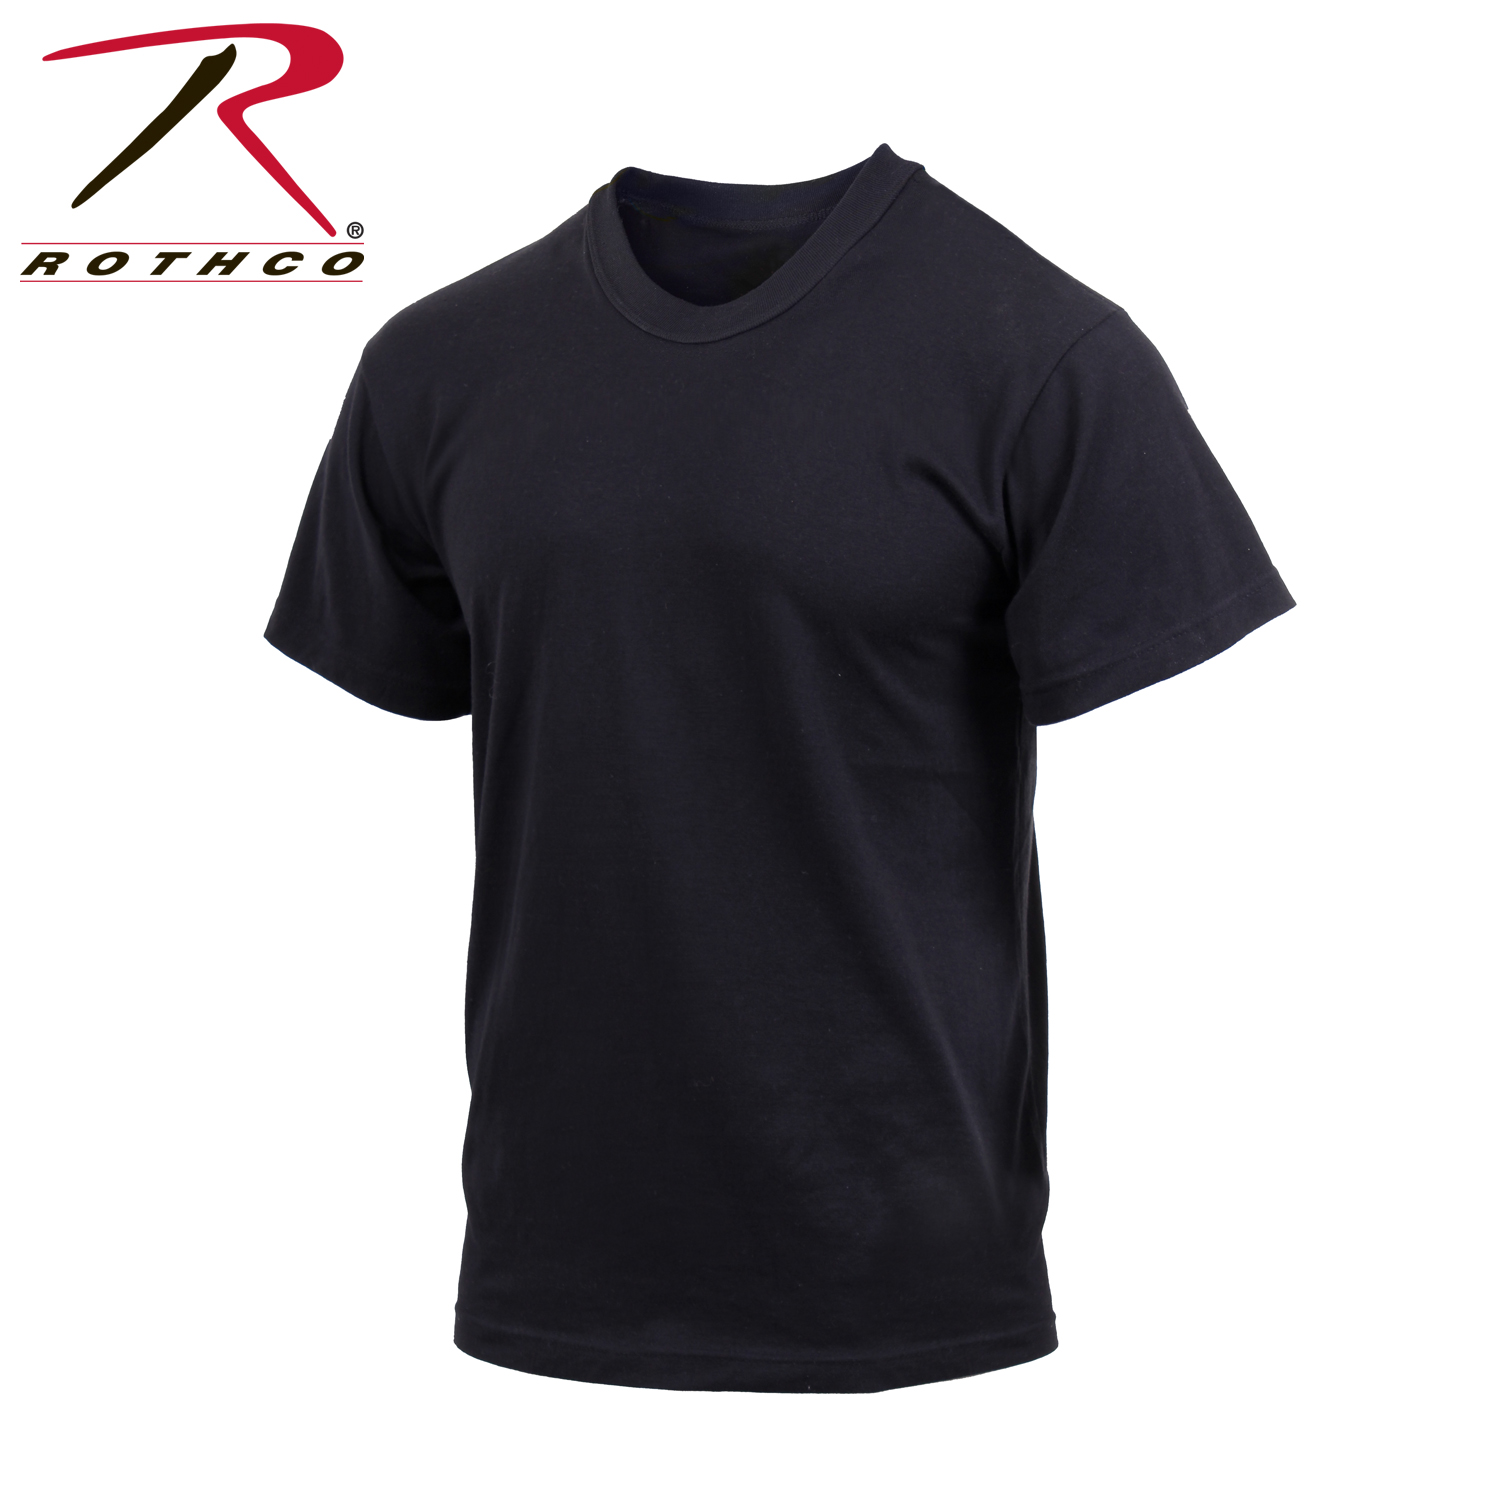 Rothco Moisture Wicking T-shirt a340de60016